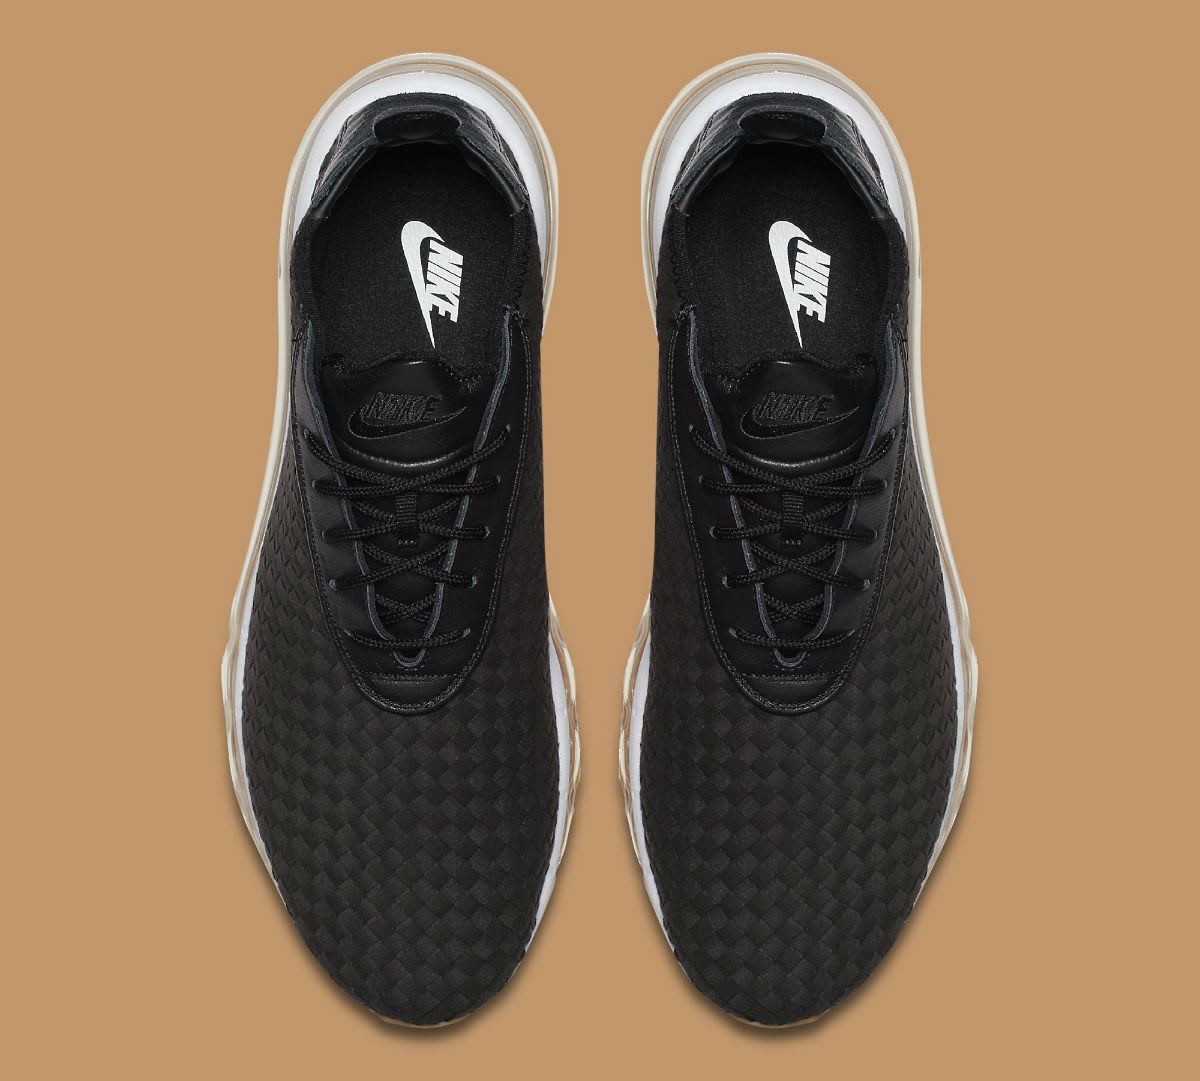 Nike Air Max Woven Boot Black Gum Release Date Top 921854-003